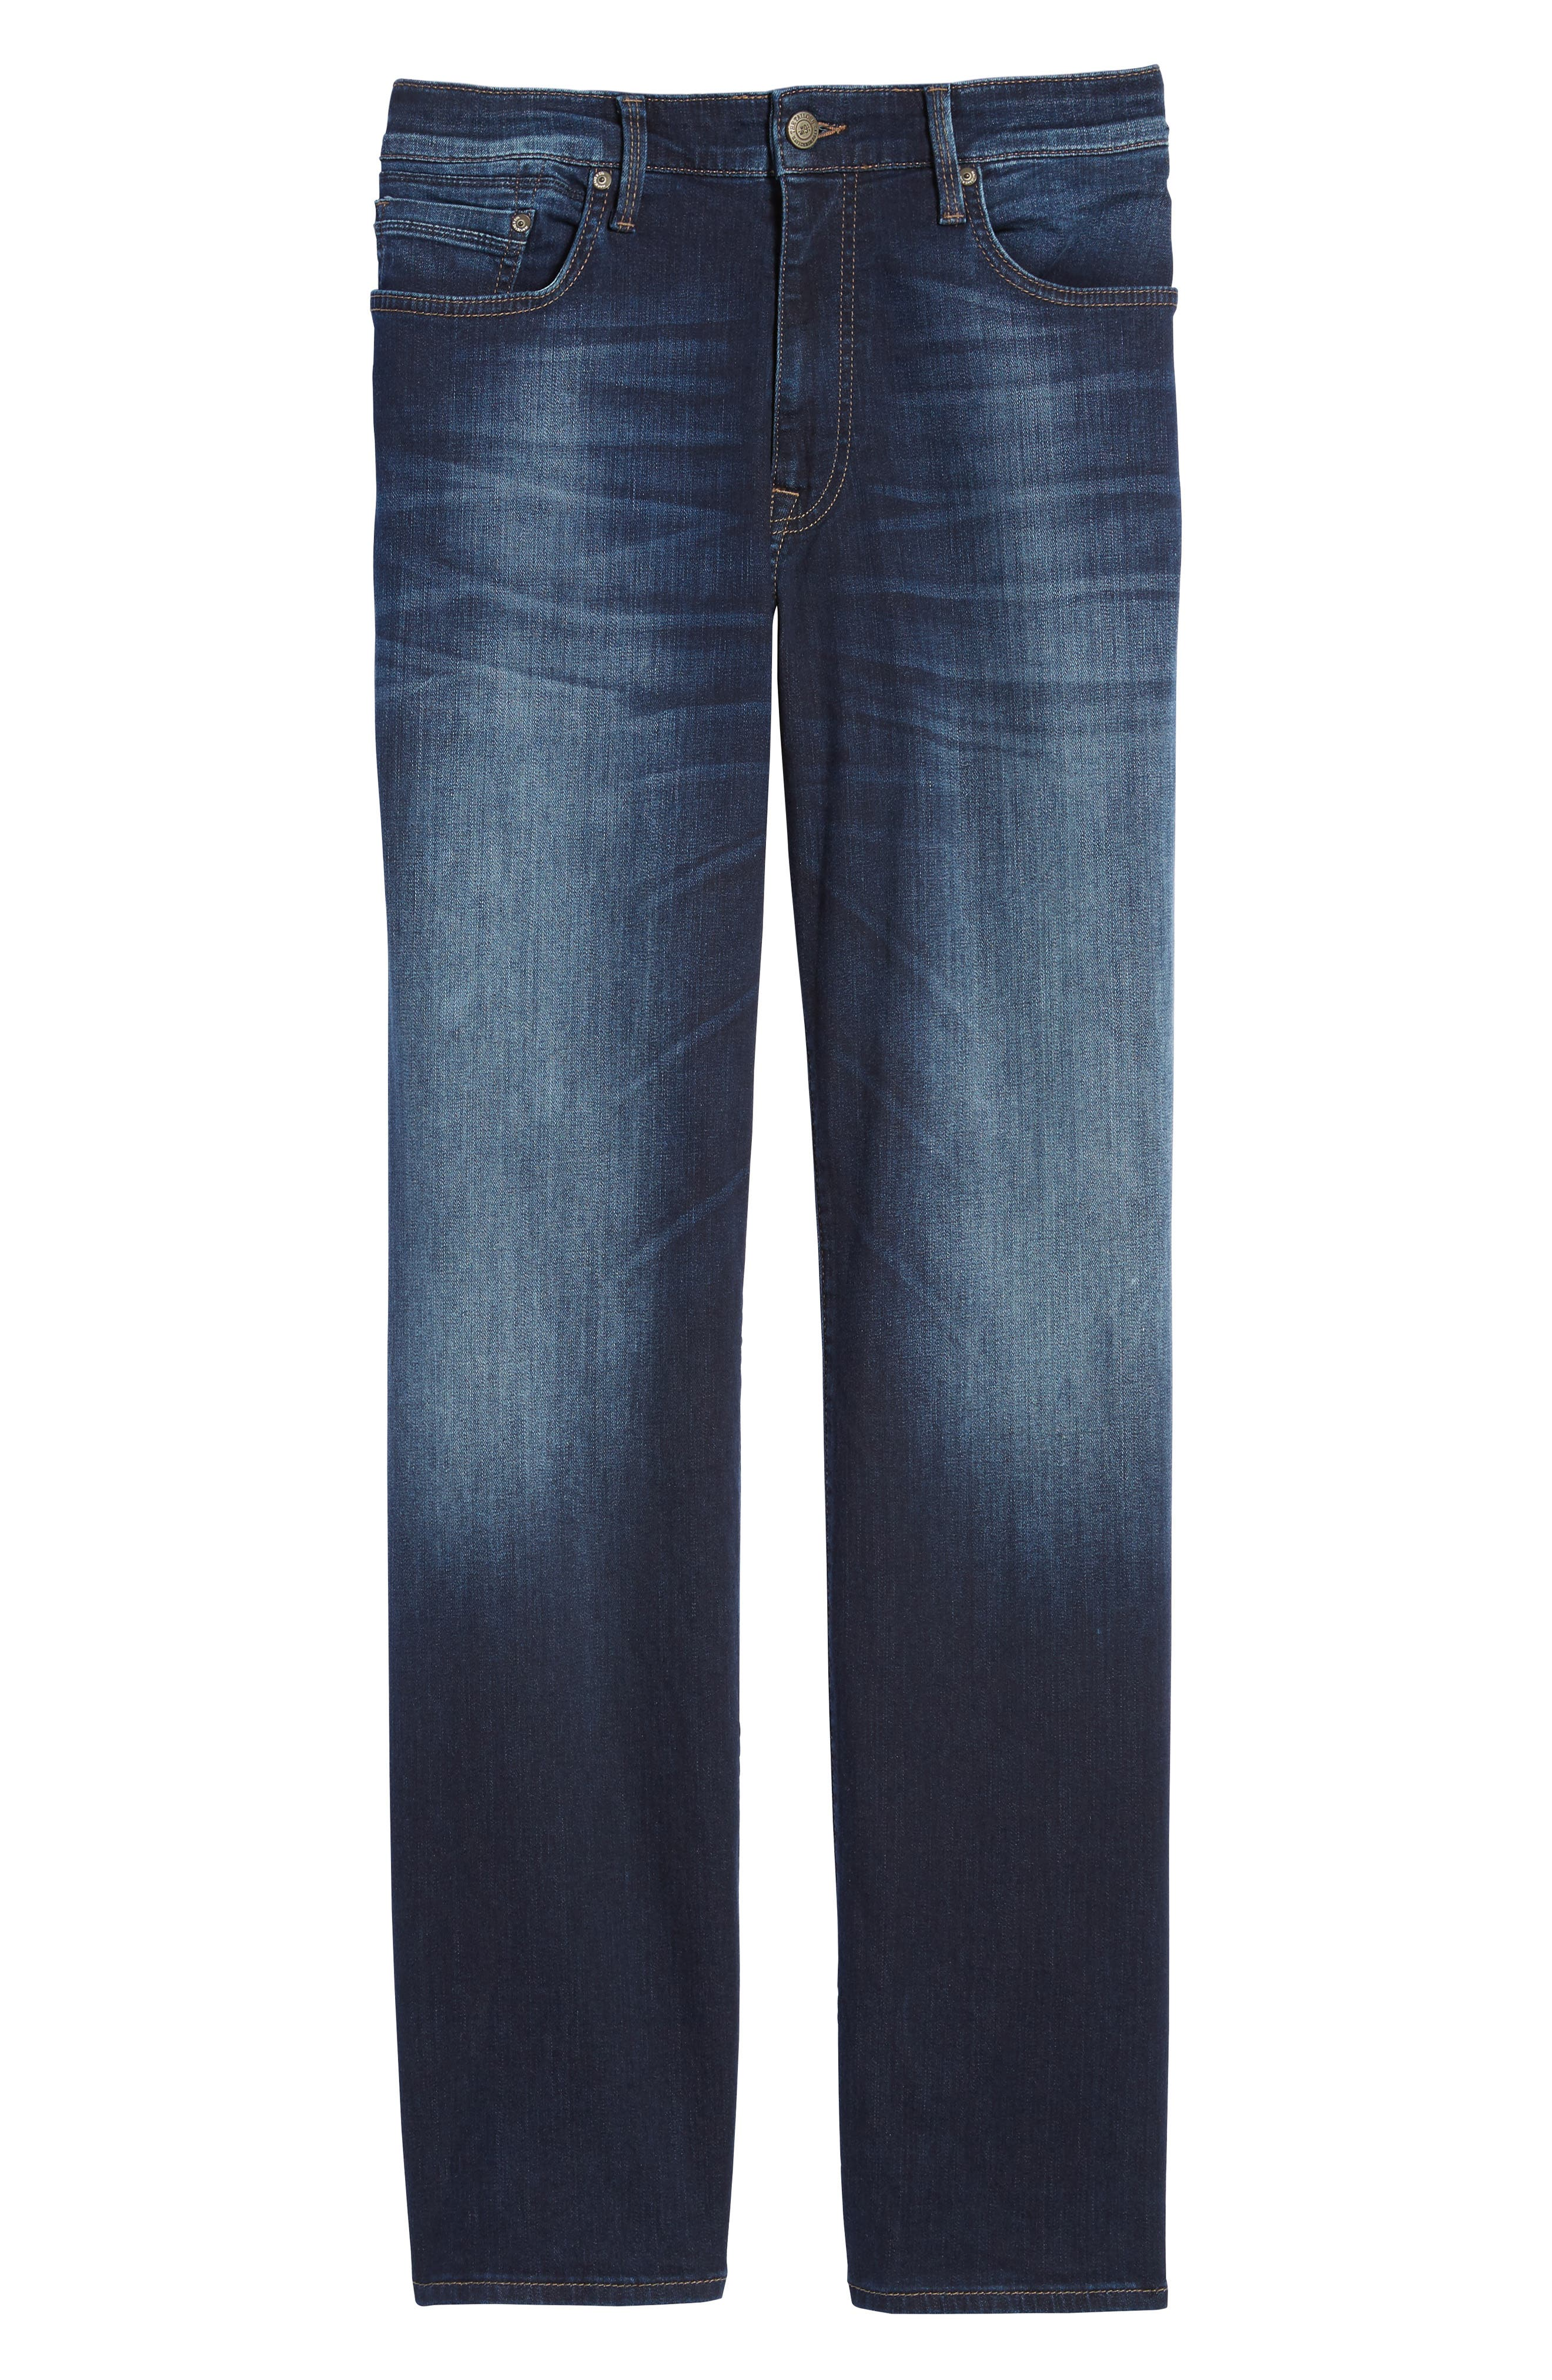 'Max' Relaxed Fit Jeans,                             Alternate thumbnail 6, color,                             Dark Williamsburg